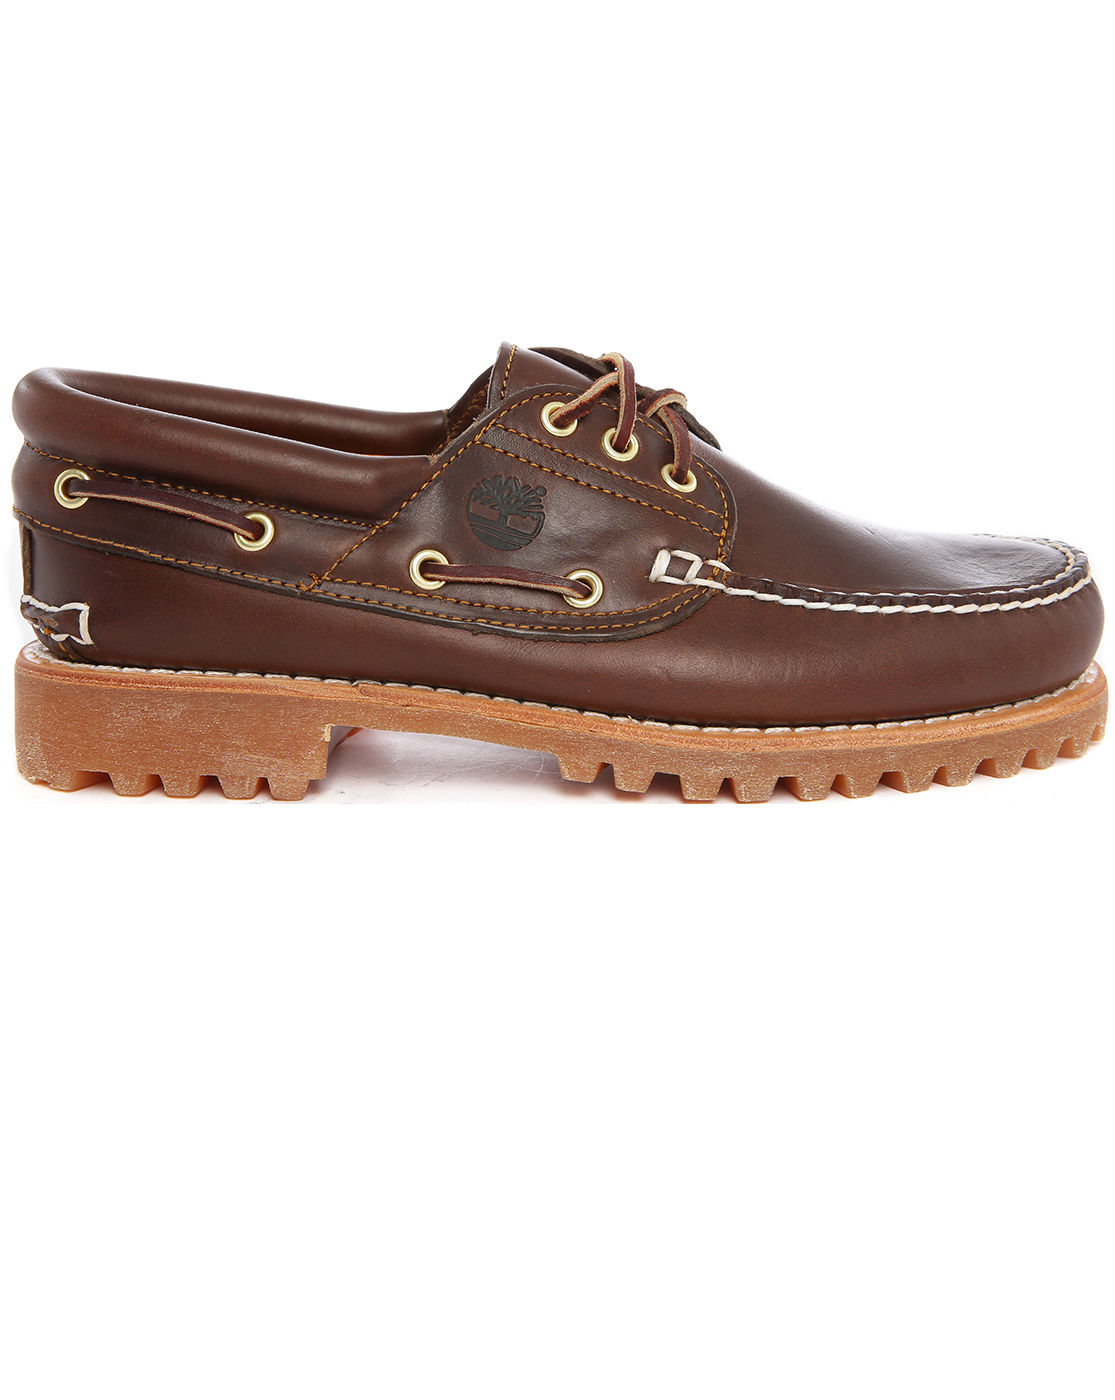 timberland authentic brown leather boat shoes in brown for